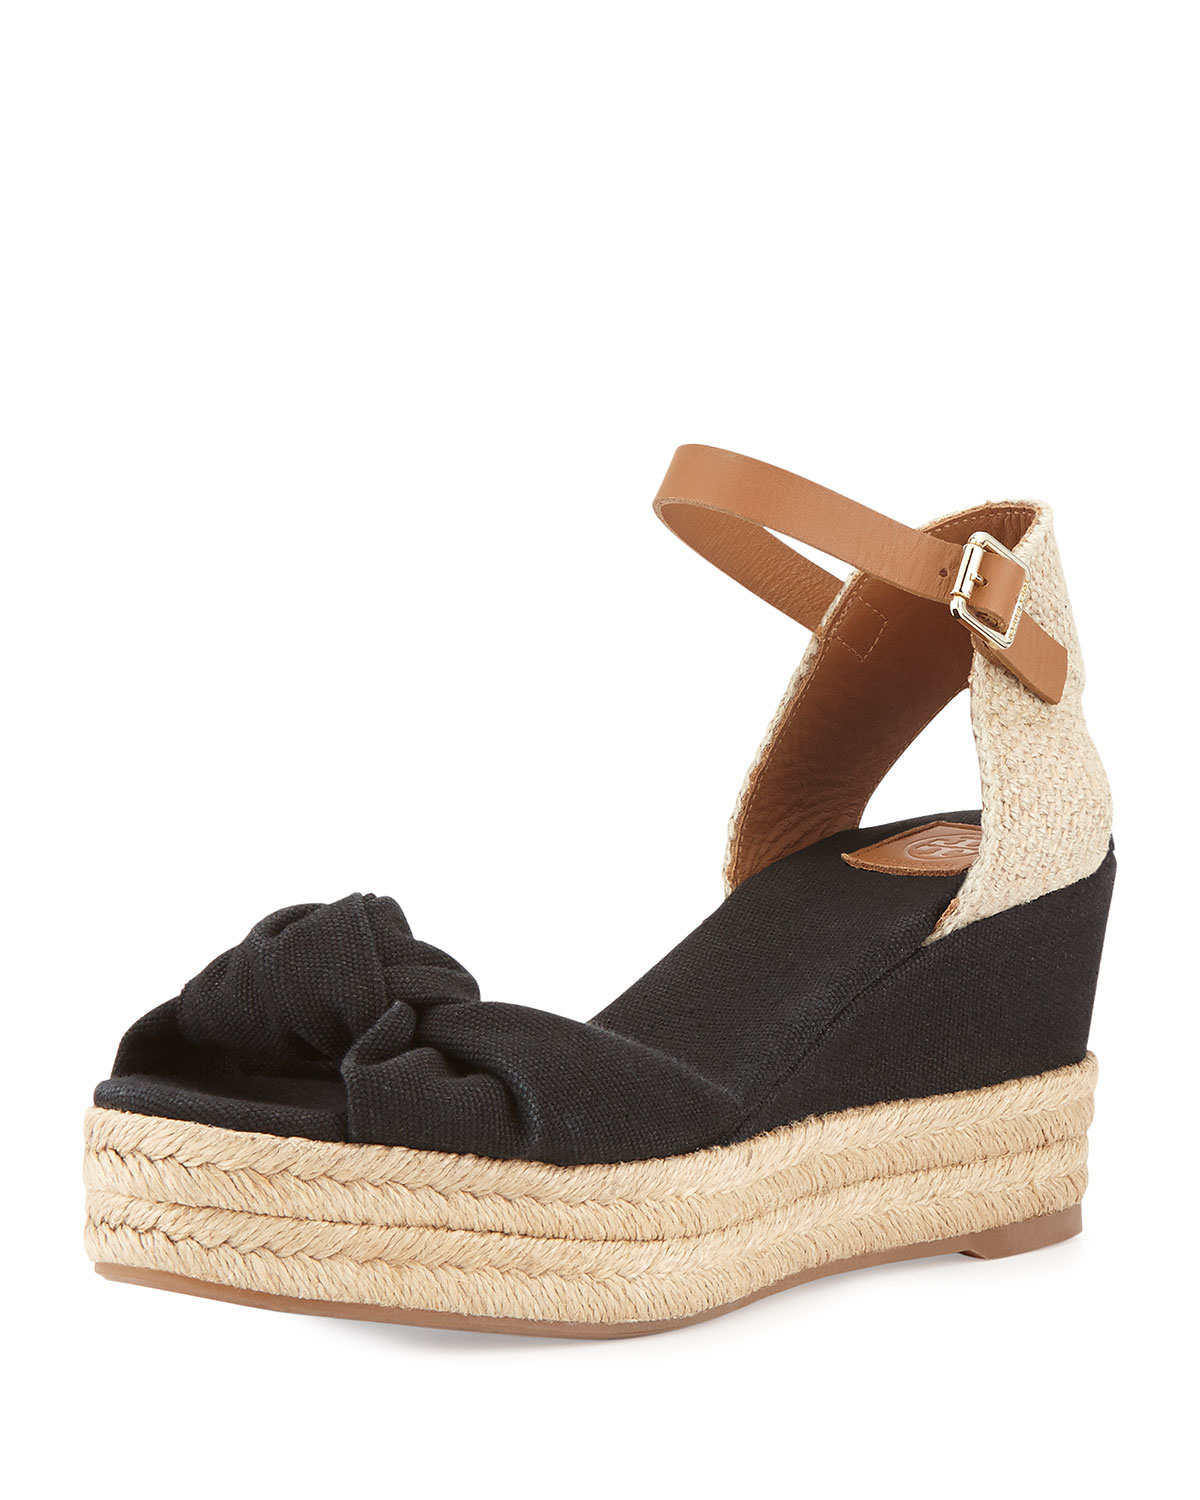 e0f00c5f337d Tory Burch Knotted Bow Wedge Sandal